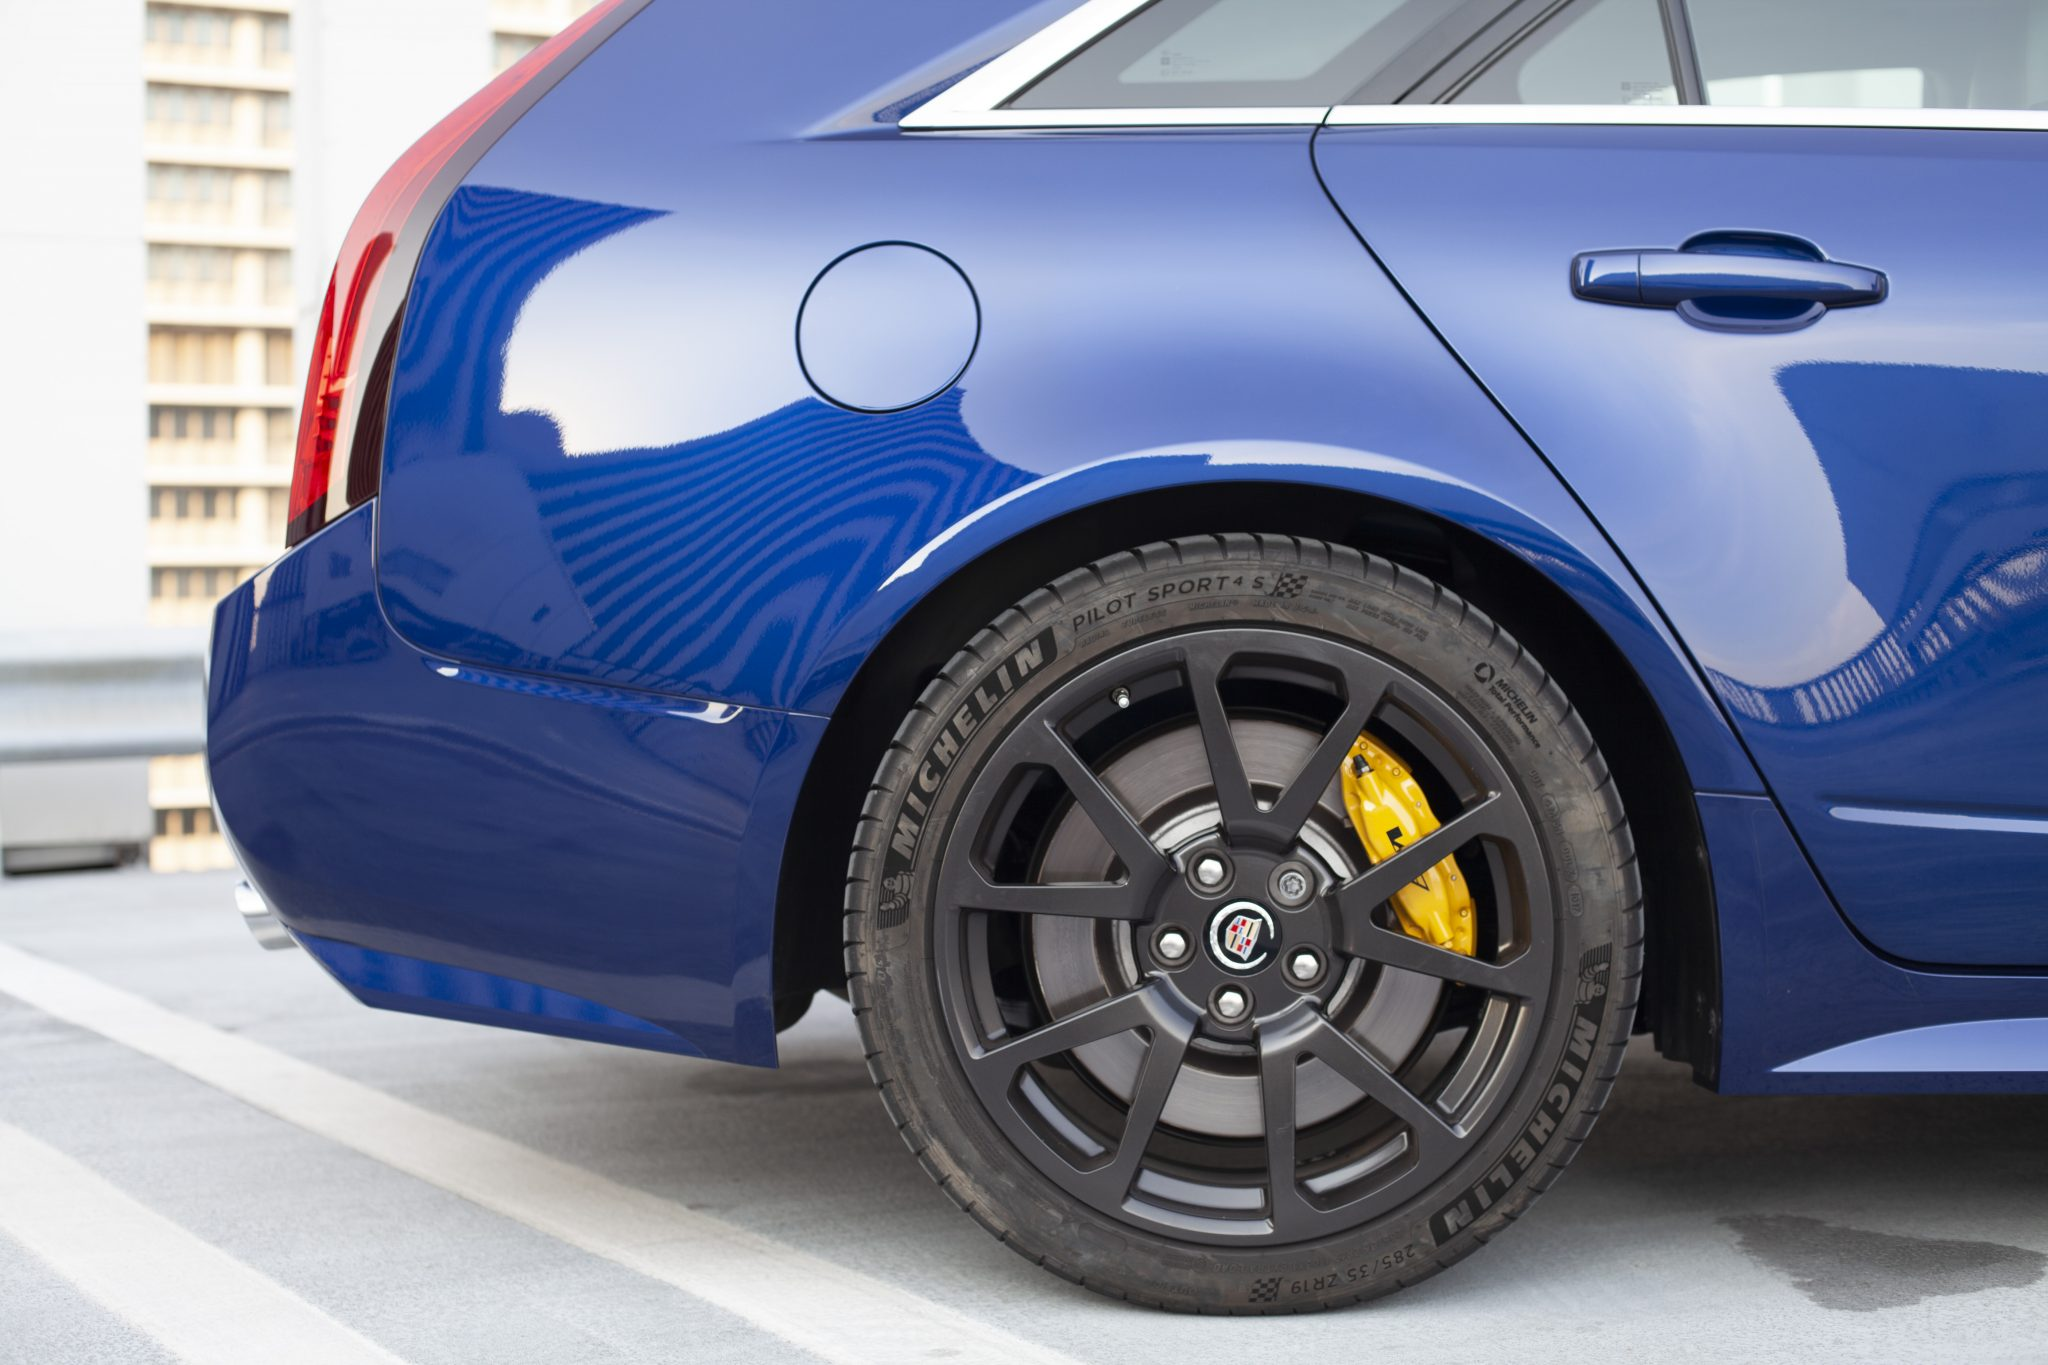 2012 Cadillac CTS-V Wagon rear wheel